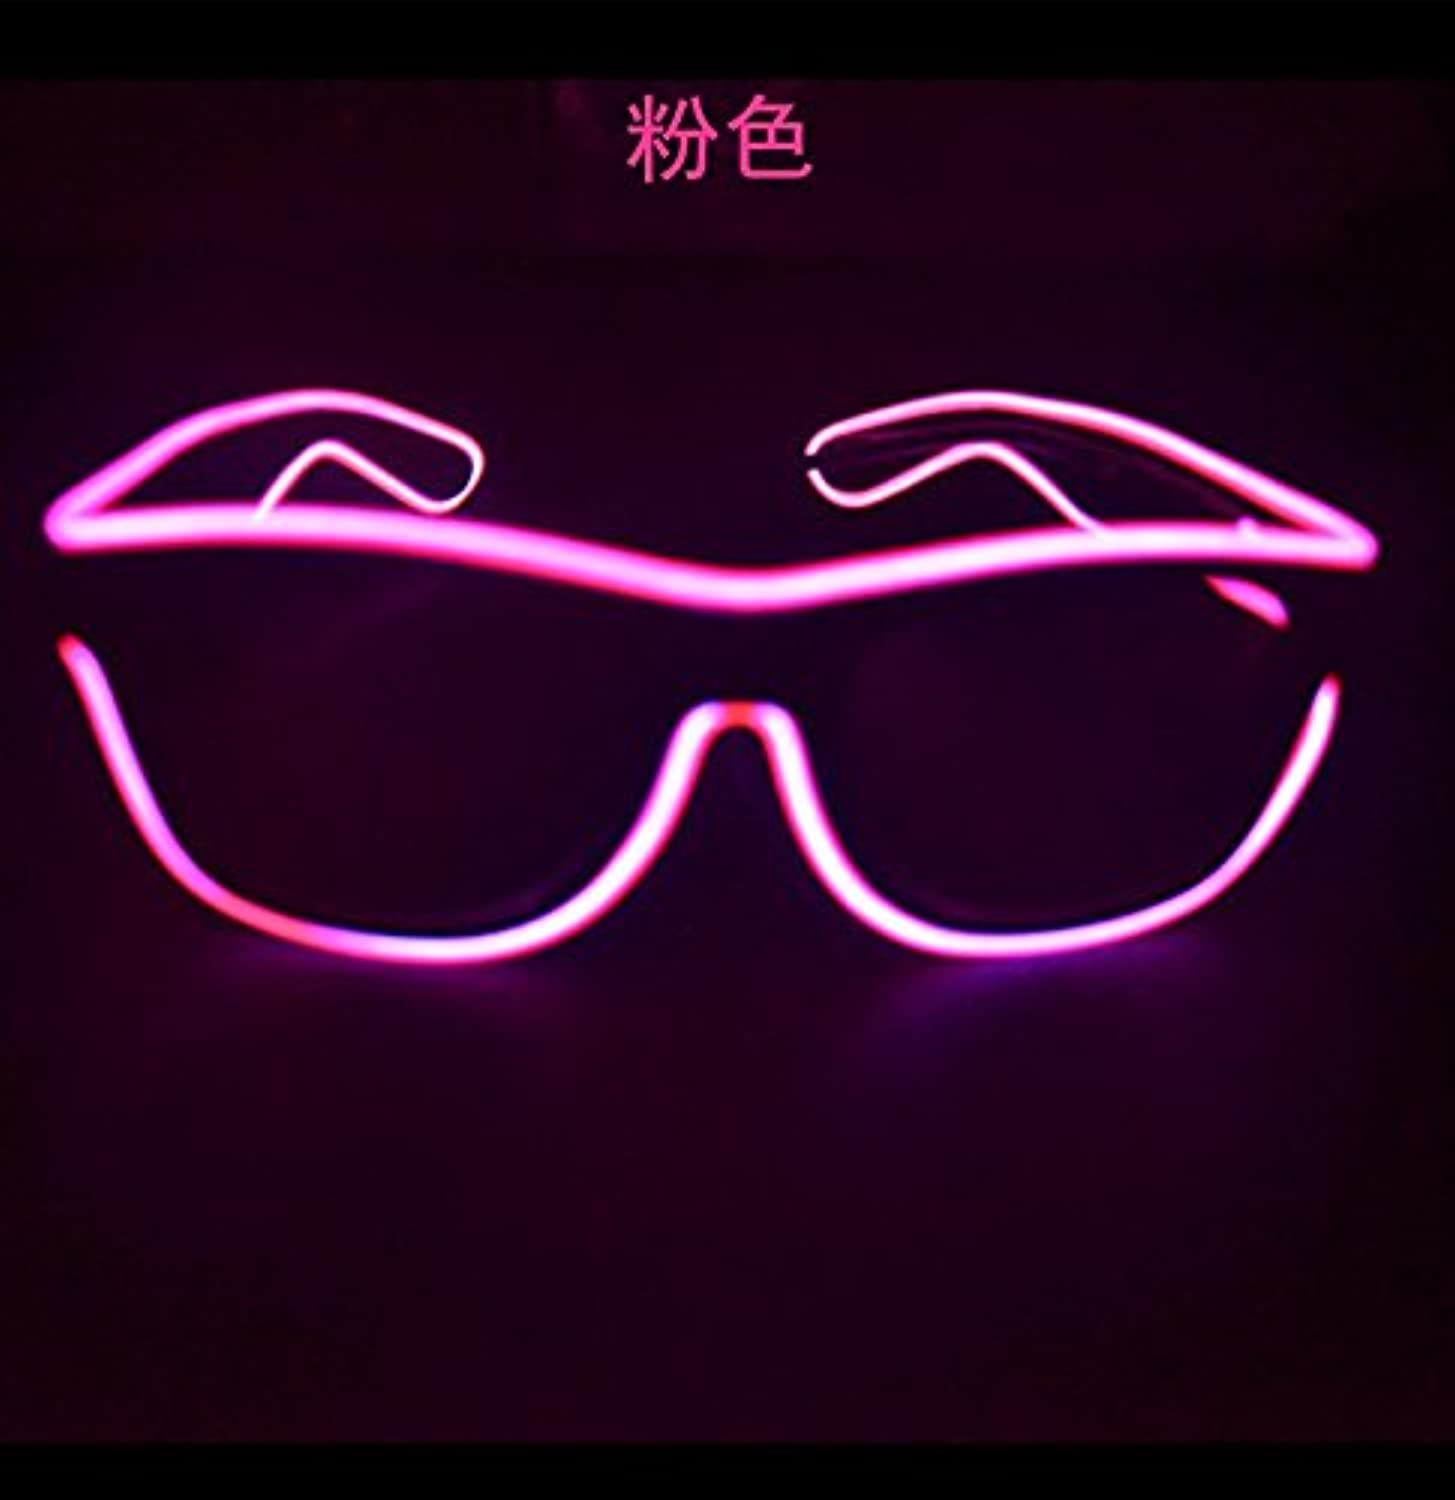 AgileShop FashionableGlow Eye Glasses with Voice Control Light Up El Wire Led Flashing Glasses for Halloween Christmas Birthday Party Favor (Pink)